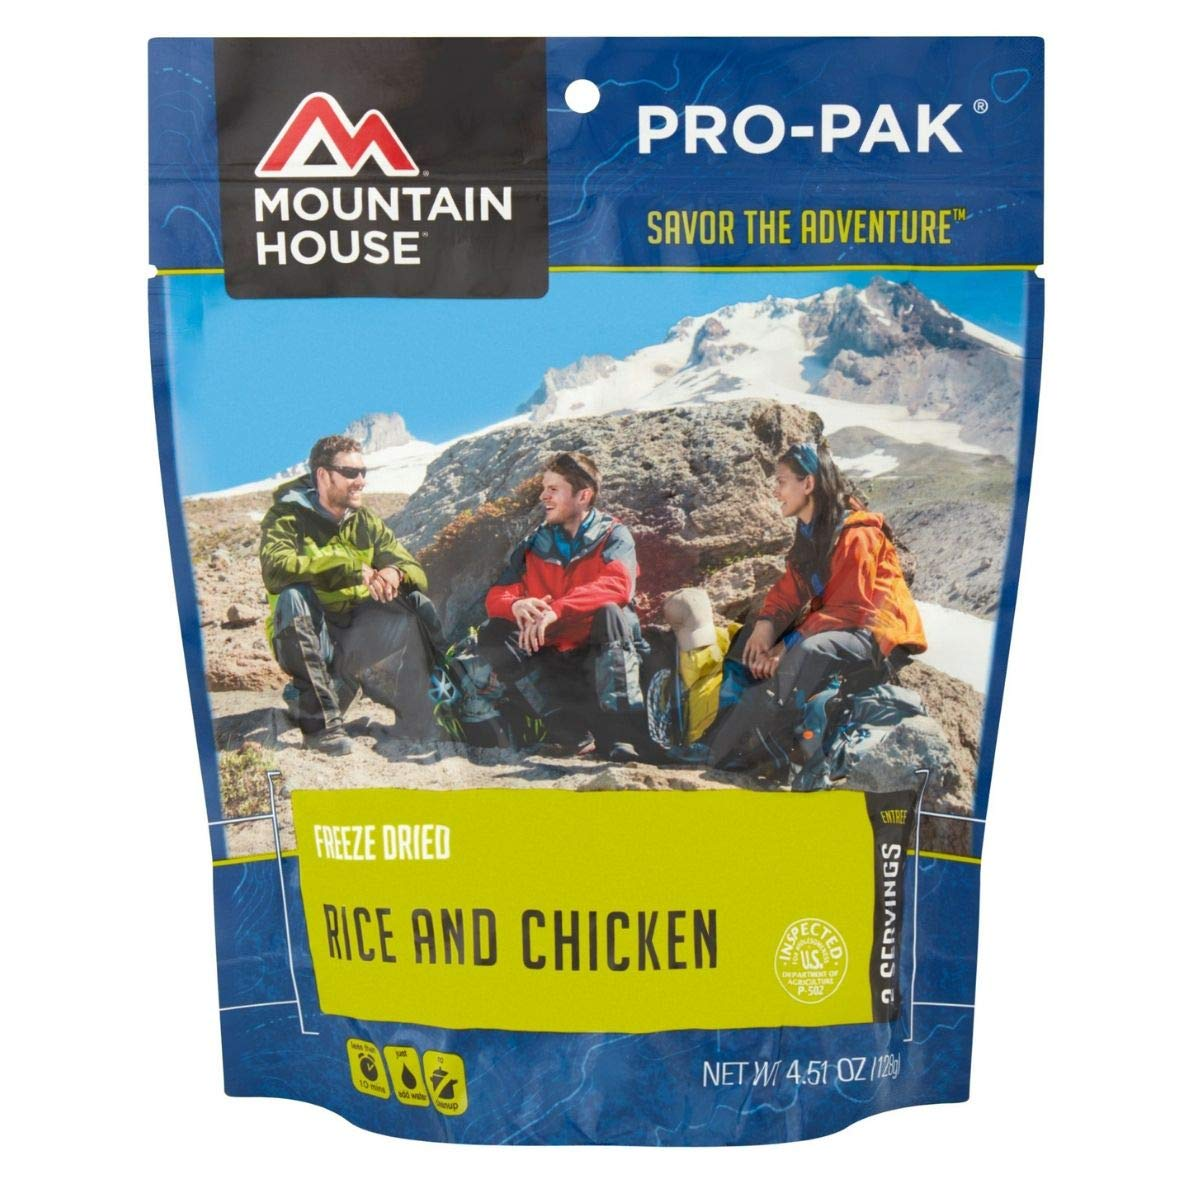 Mountain House Rice and Chicken Pro-Pak (Pack of 4)